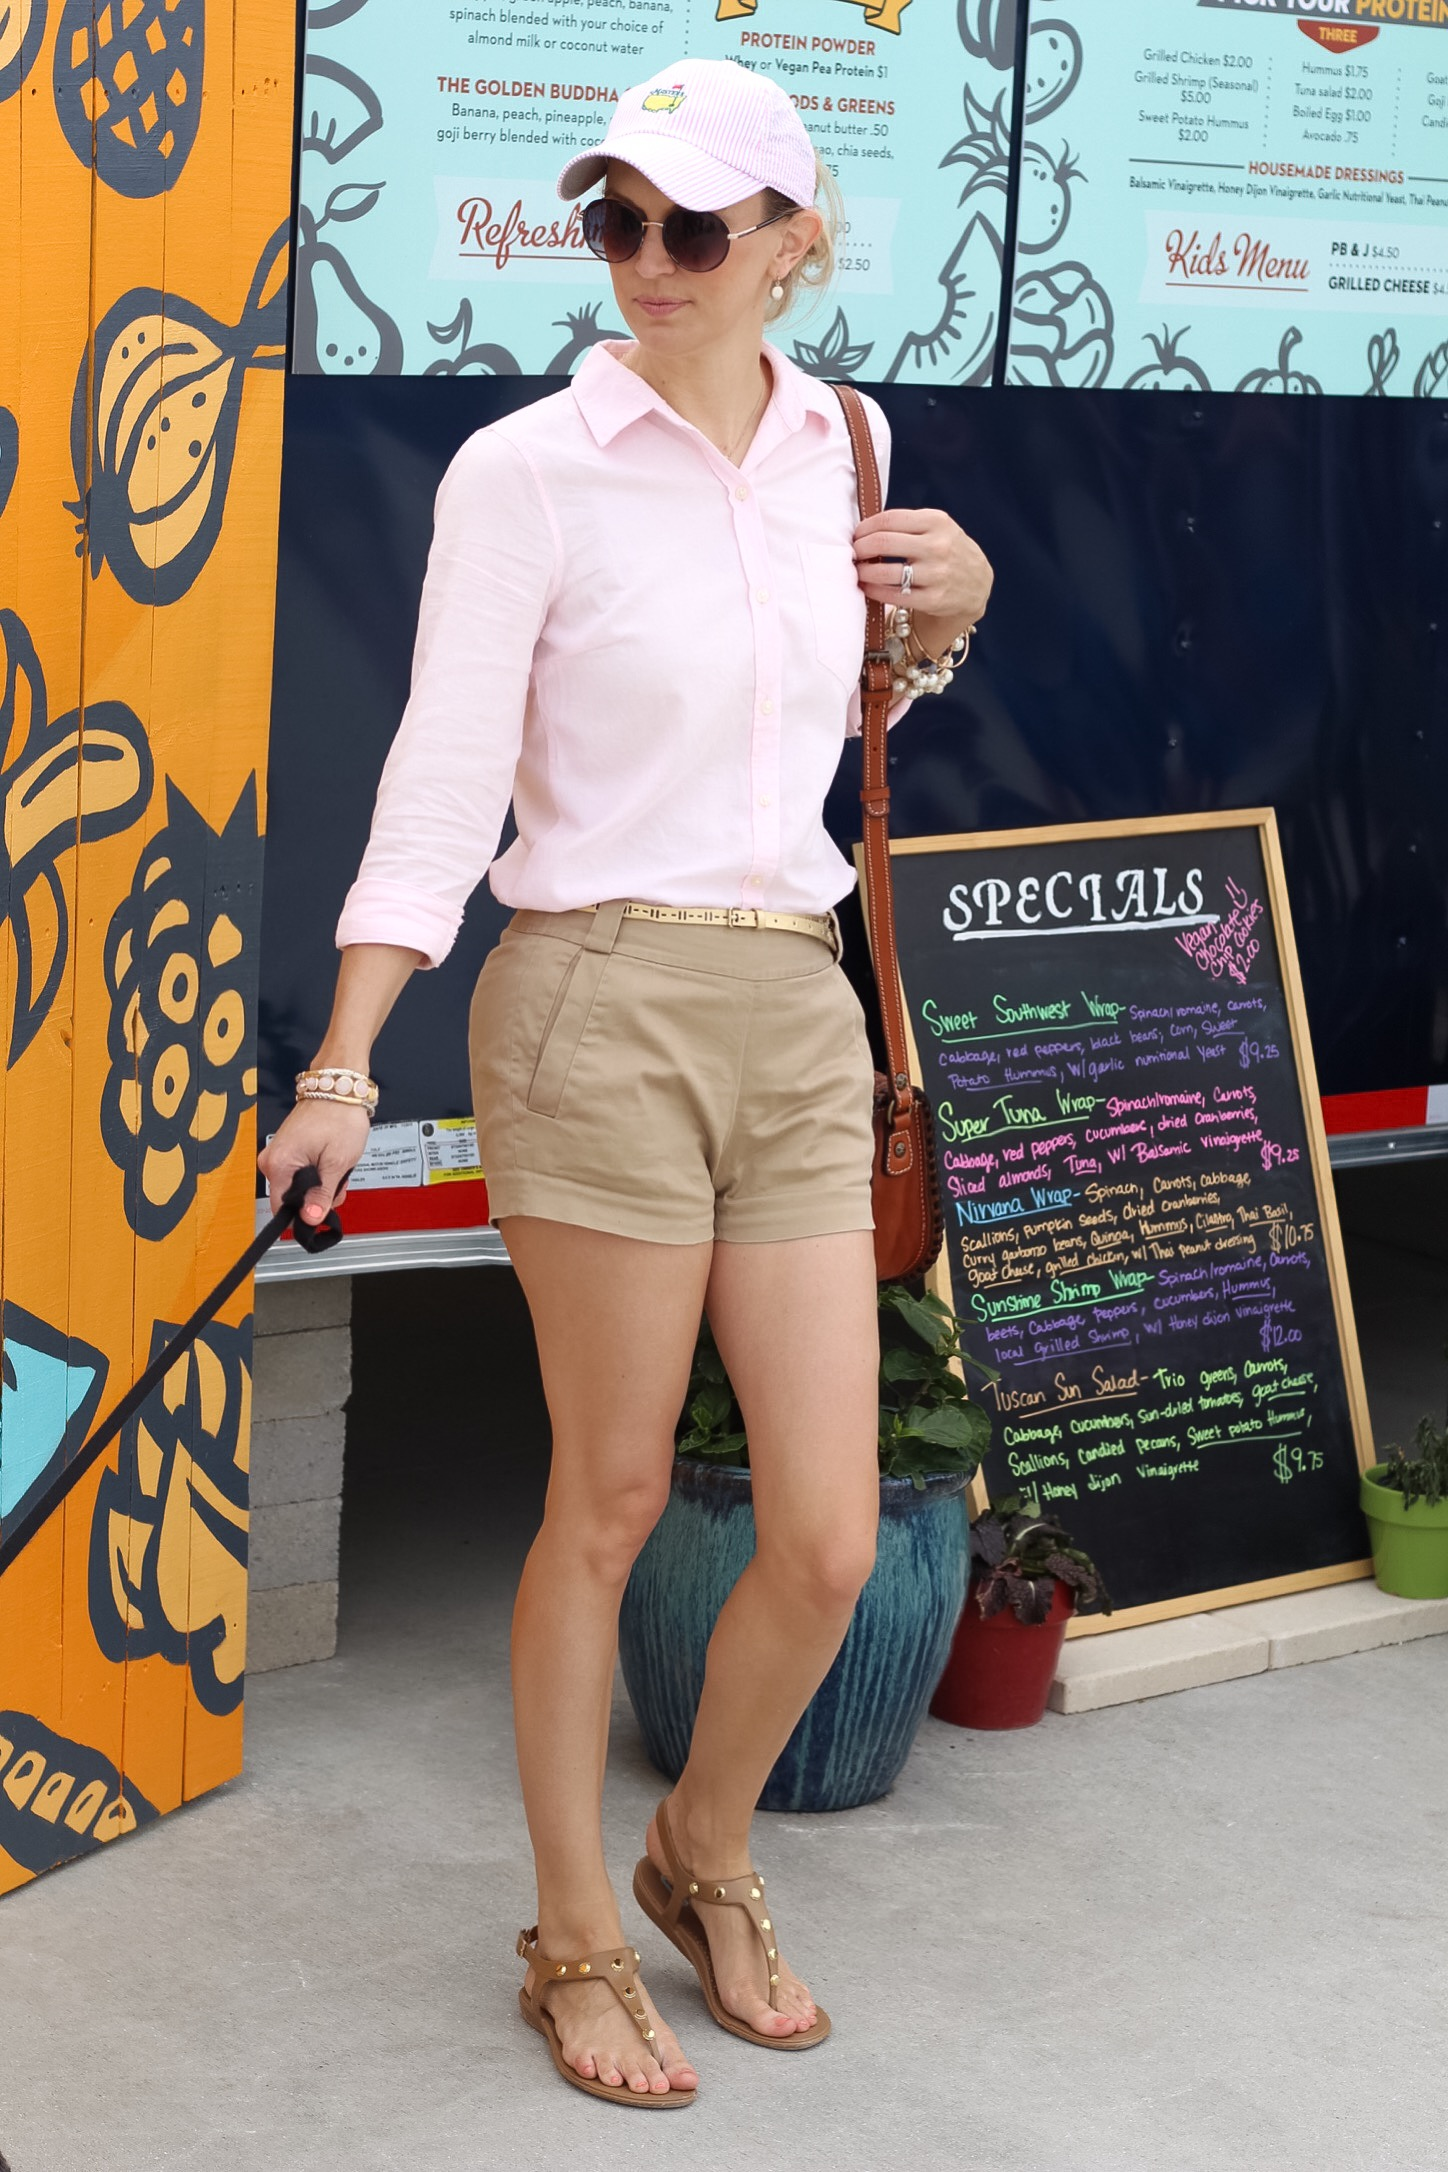 Peachfully-Chic-St-Augustine-Allison-Cawley-Crave-Food-Truck1